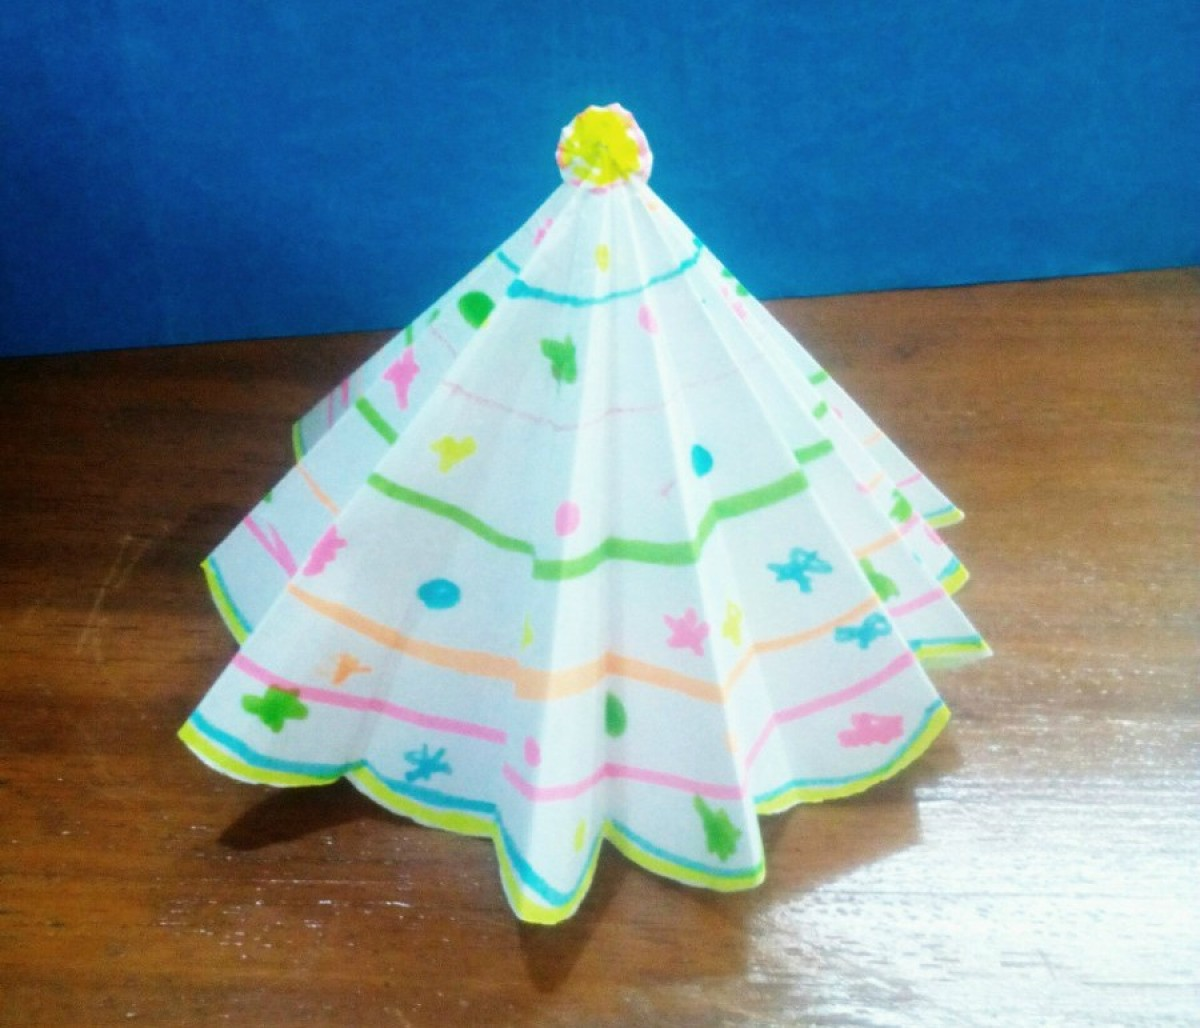 3d Paper Christmas Tree.Making A 3d Paper Christmas Tree Thriftyfun